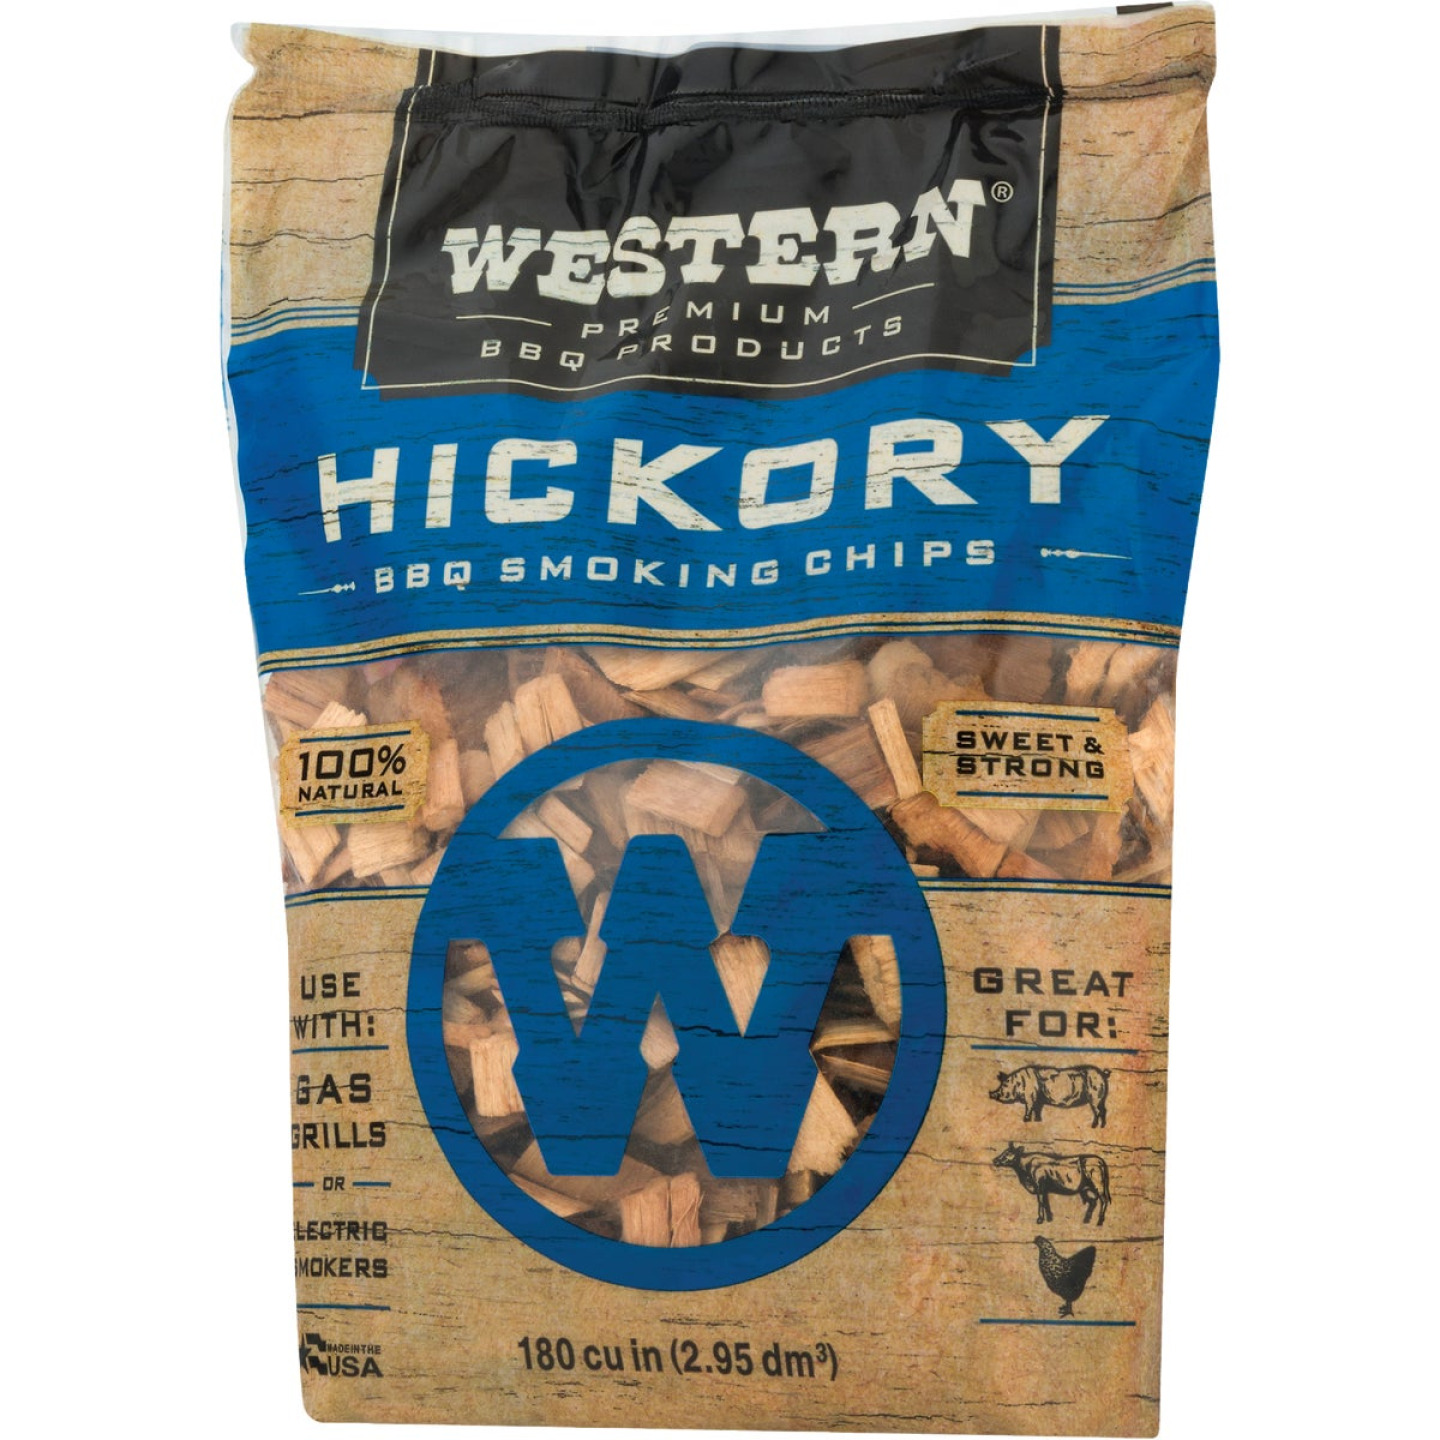 Western 2 Lb. Hickory Wood Smoking Chips Image 5